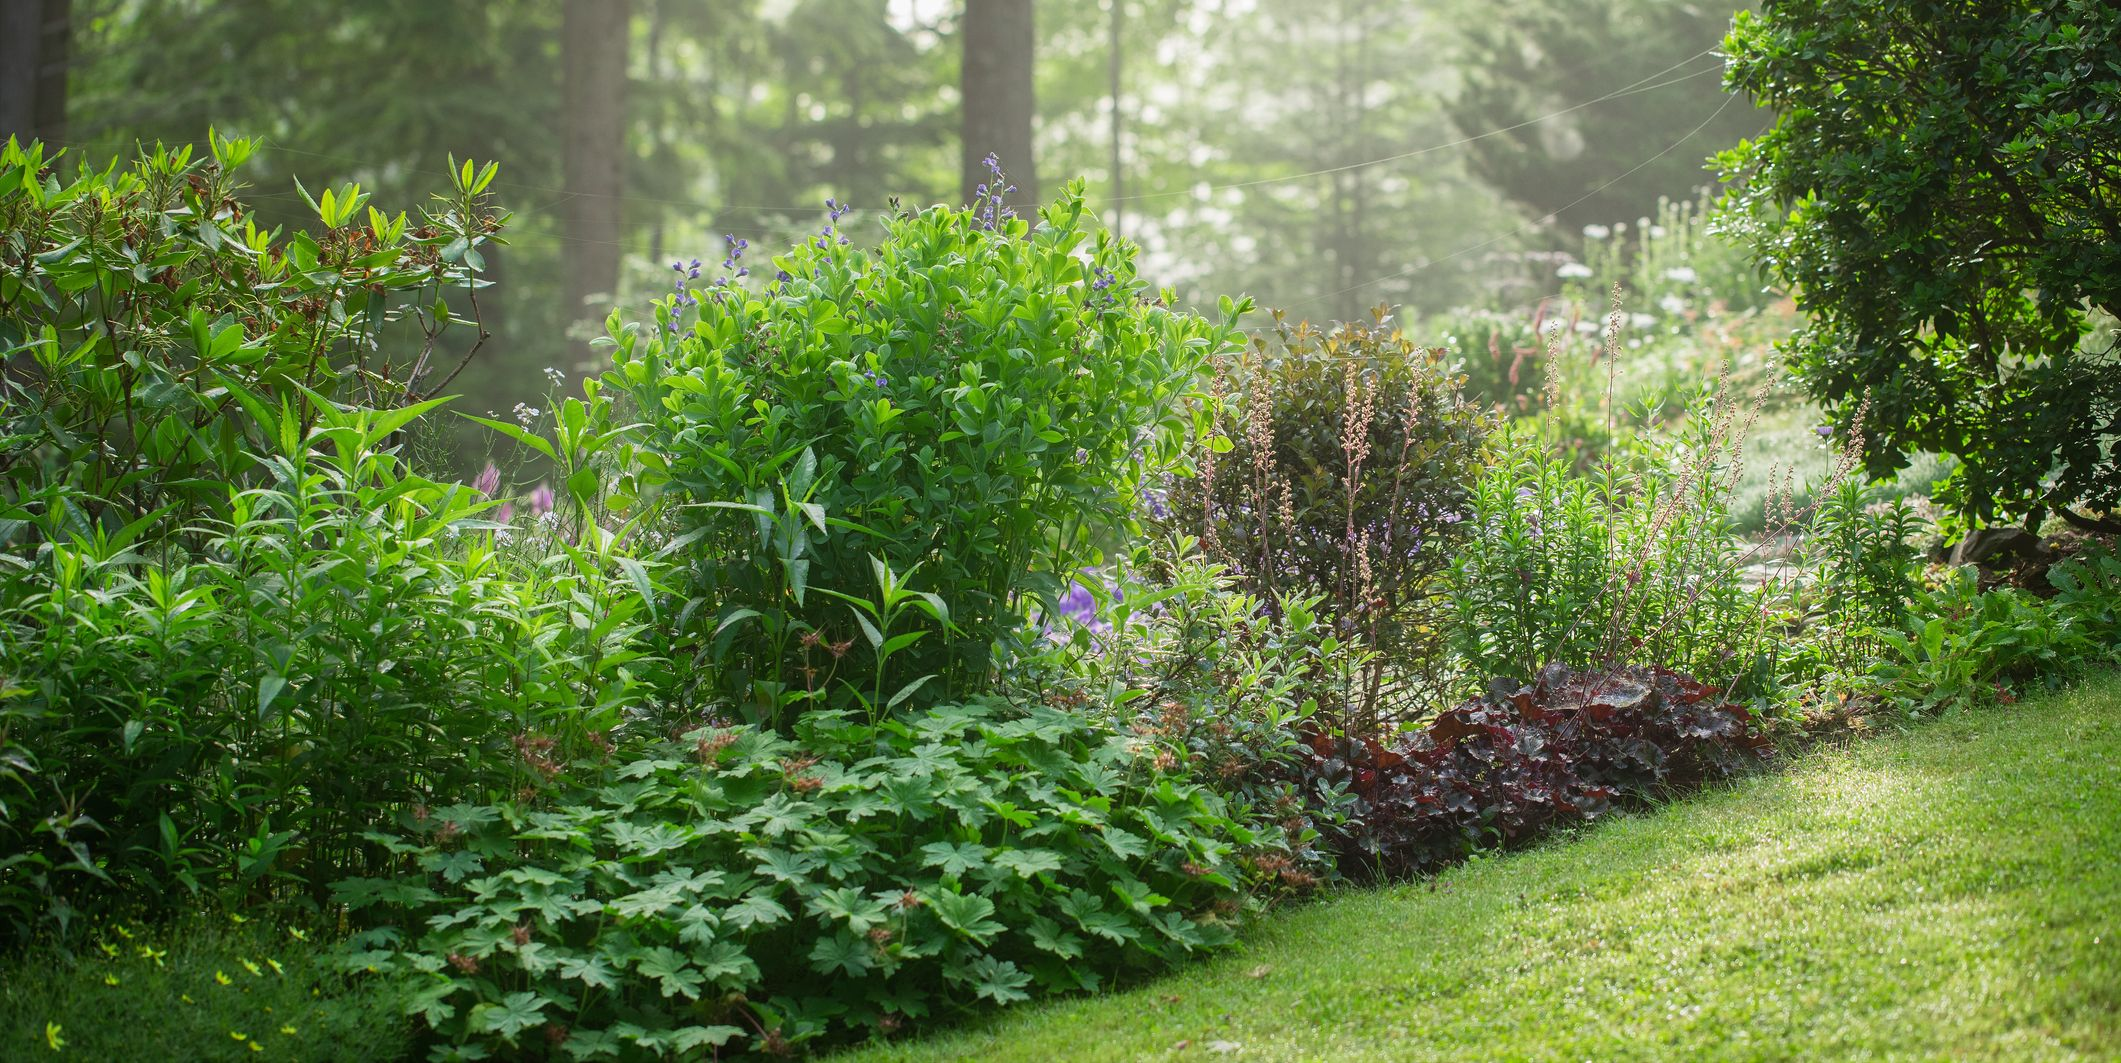 20 Perennials That Will Actually Thrive in Shade